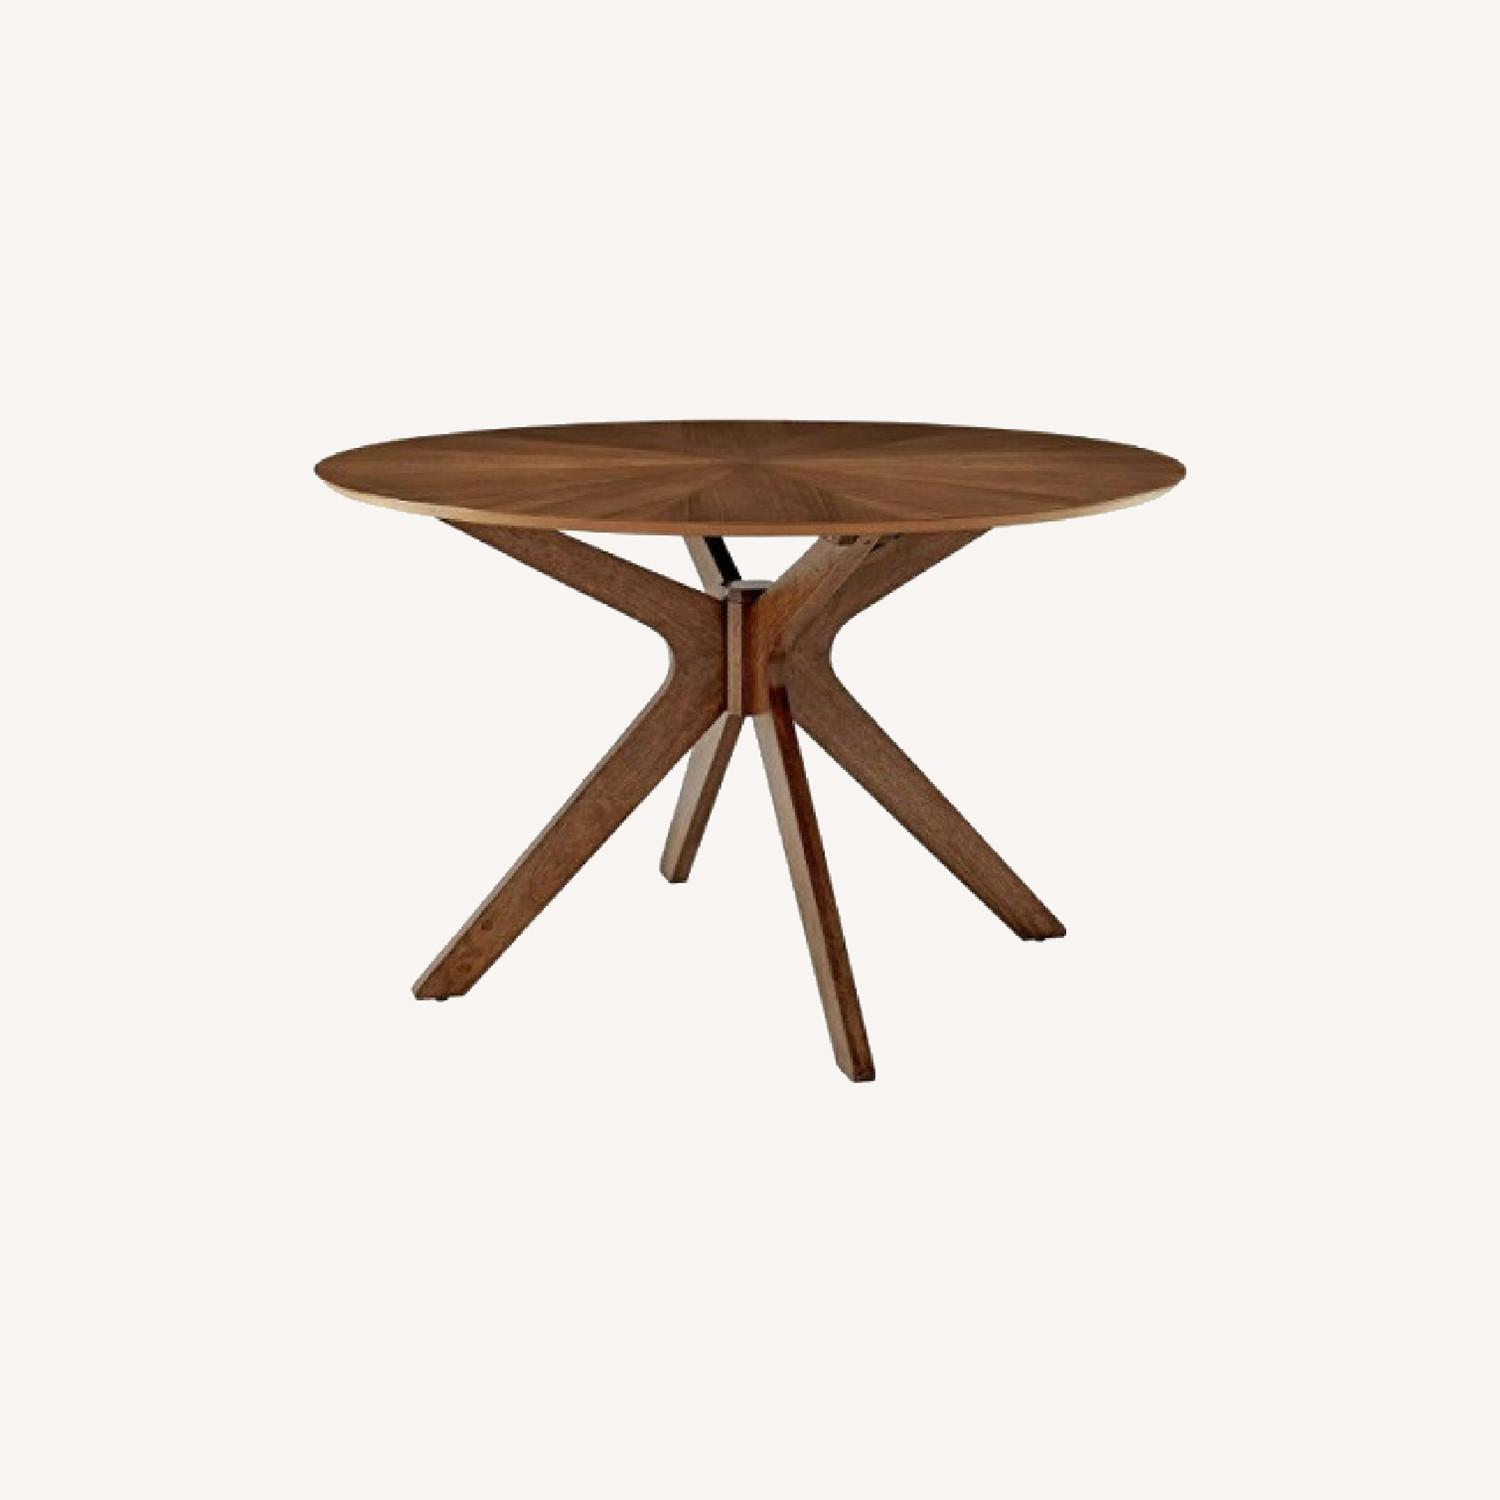 Modway Pedestal 47 Dining Table in Walnut - image-0